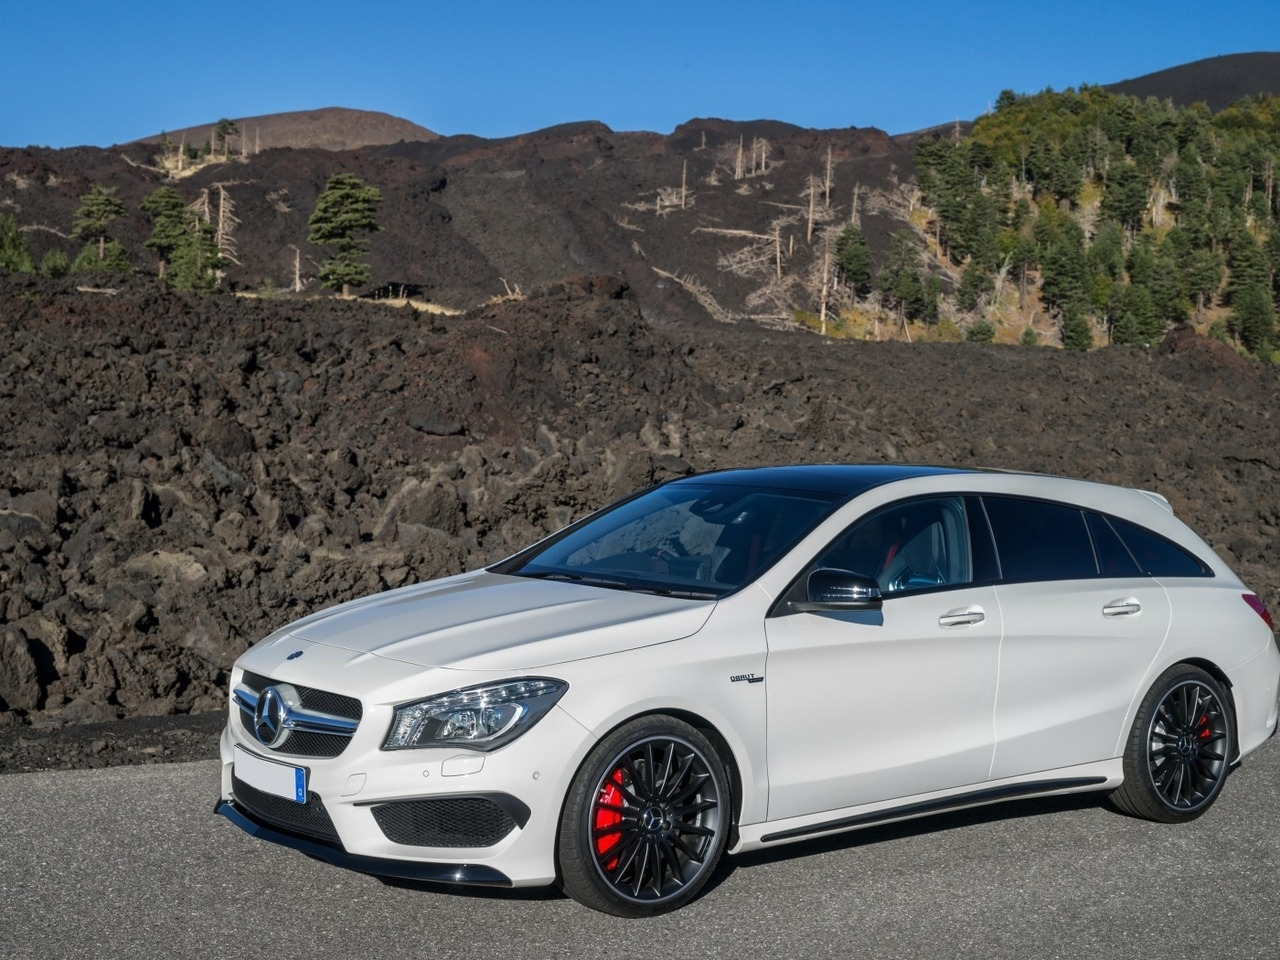 Mercedes Benz CLA 45 AMG for 1280 x 960 resolution